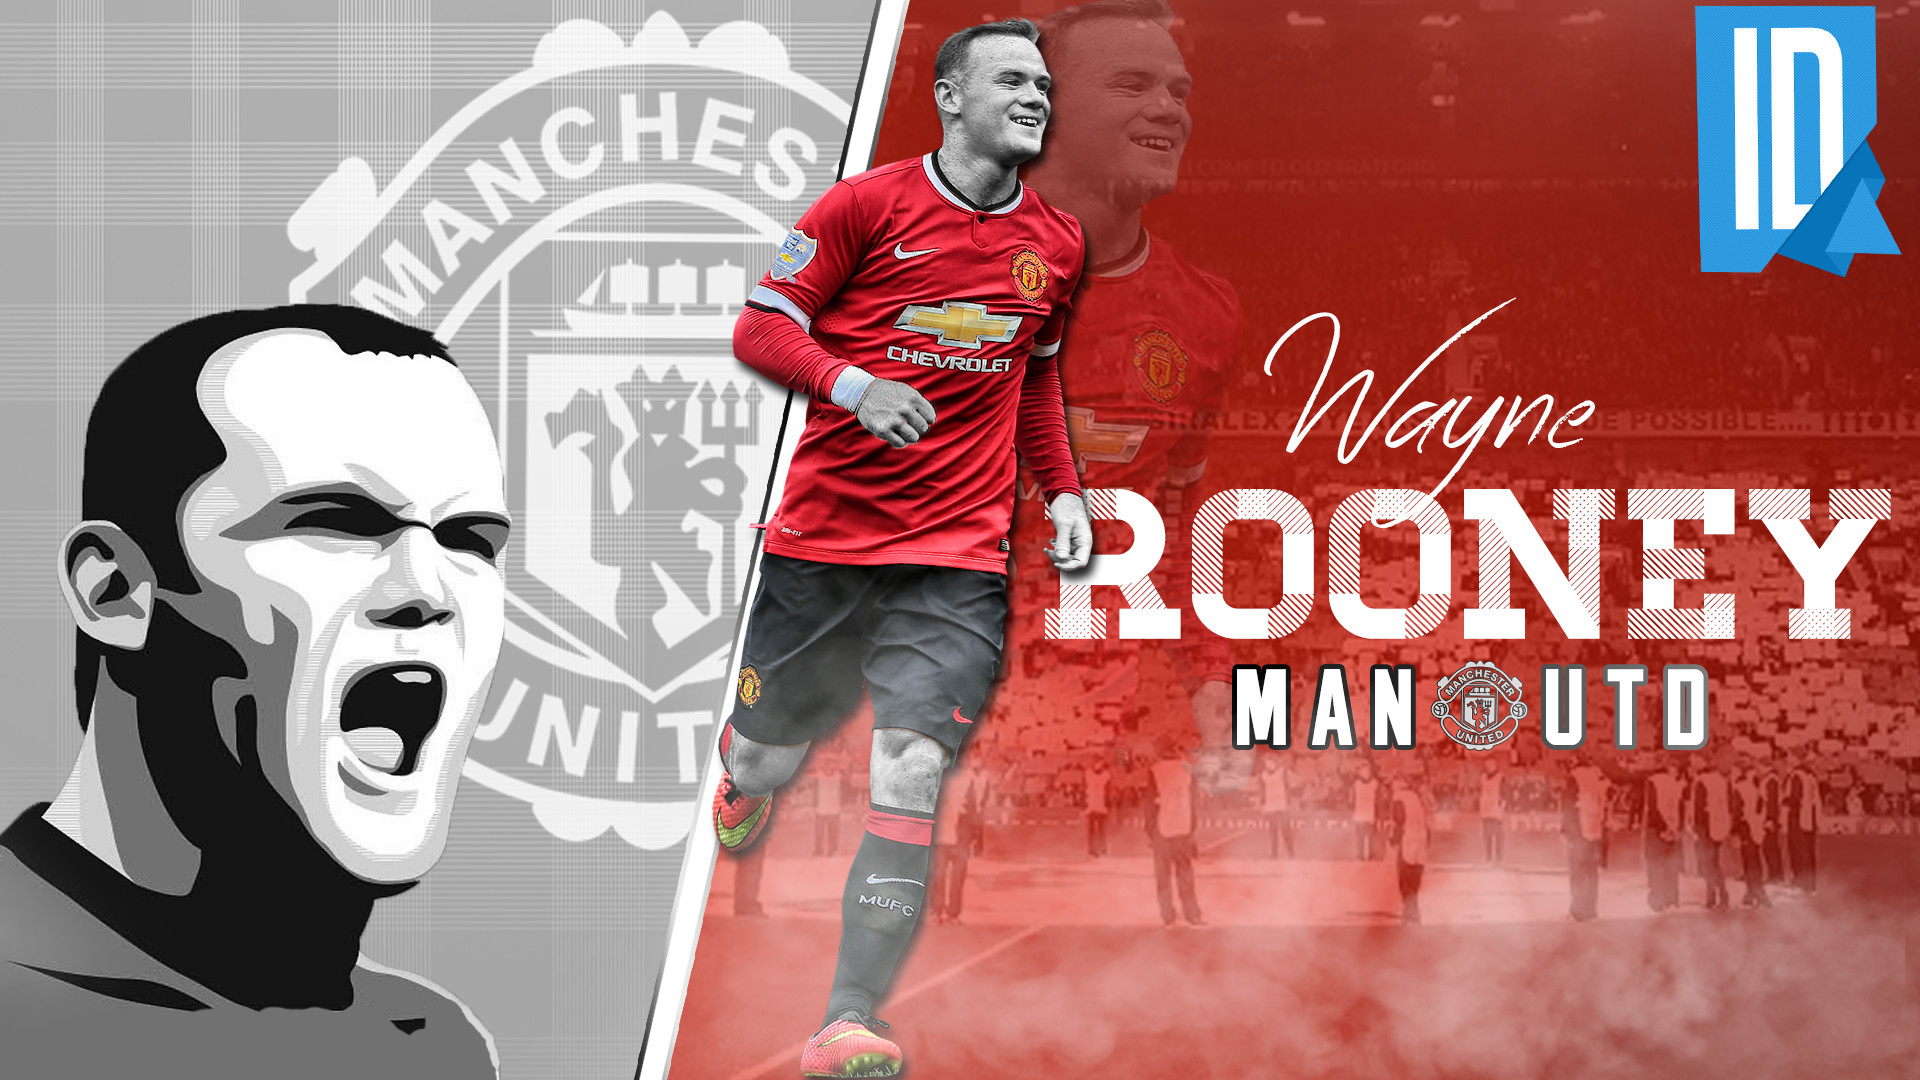 1920x1080 ... IndividualDesign Wayne Rooney RED DEVIL - Wallpaper by IndividualDesign